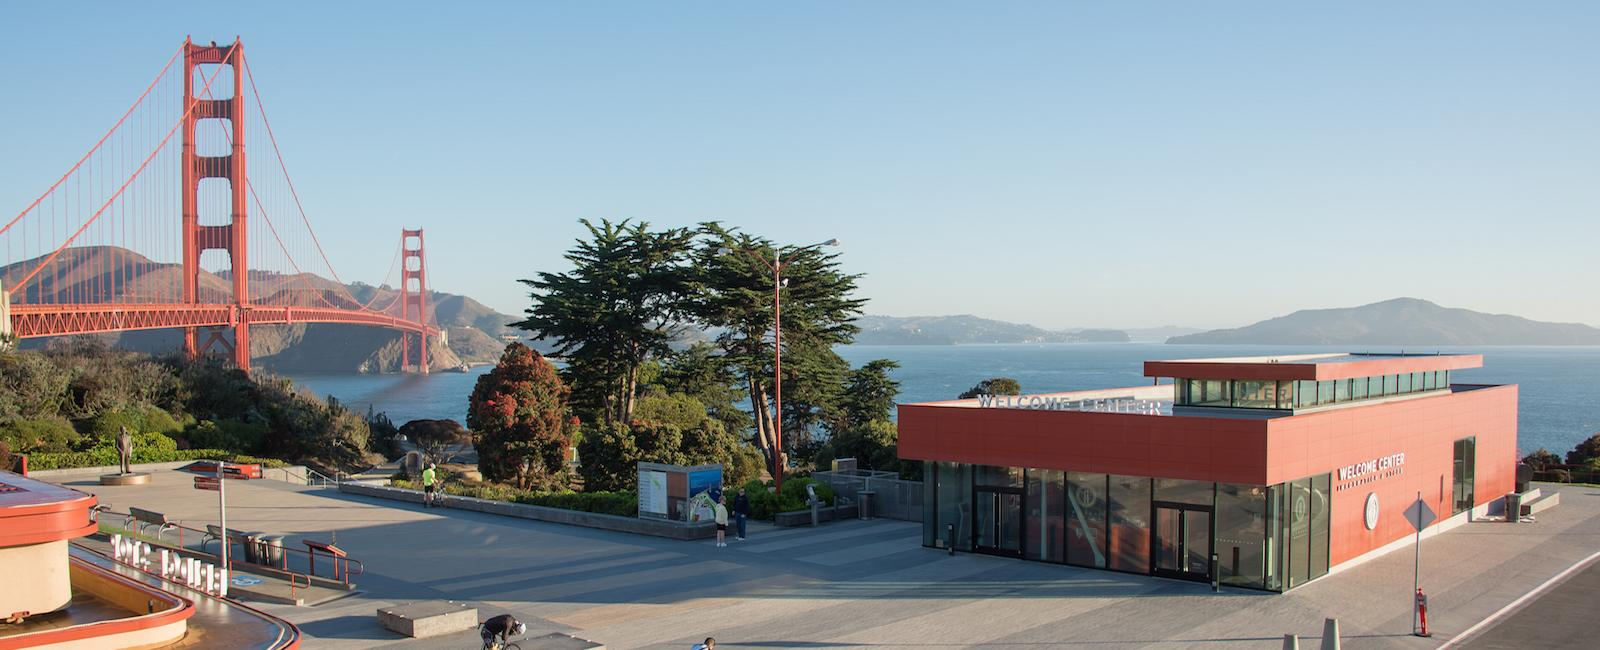 The Golden Gate Bridge Welcome Center